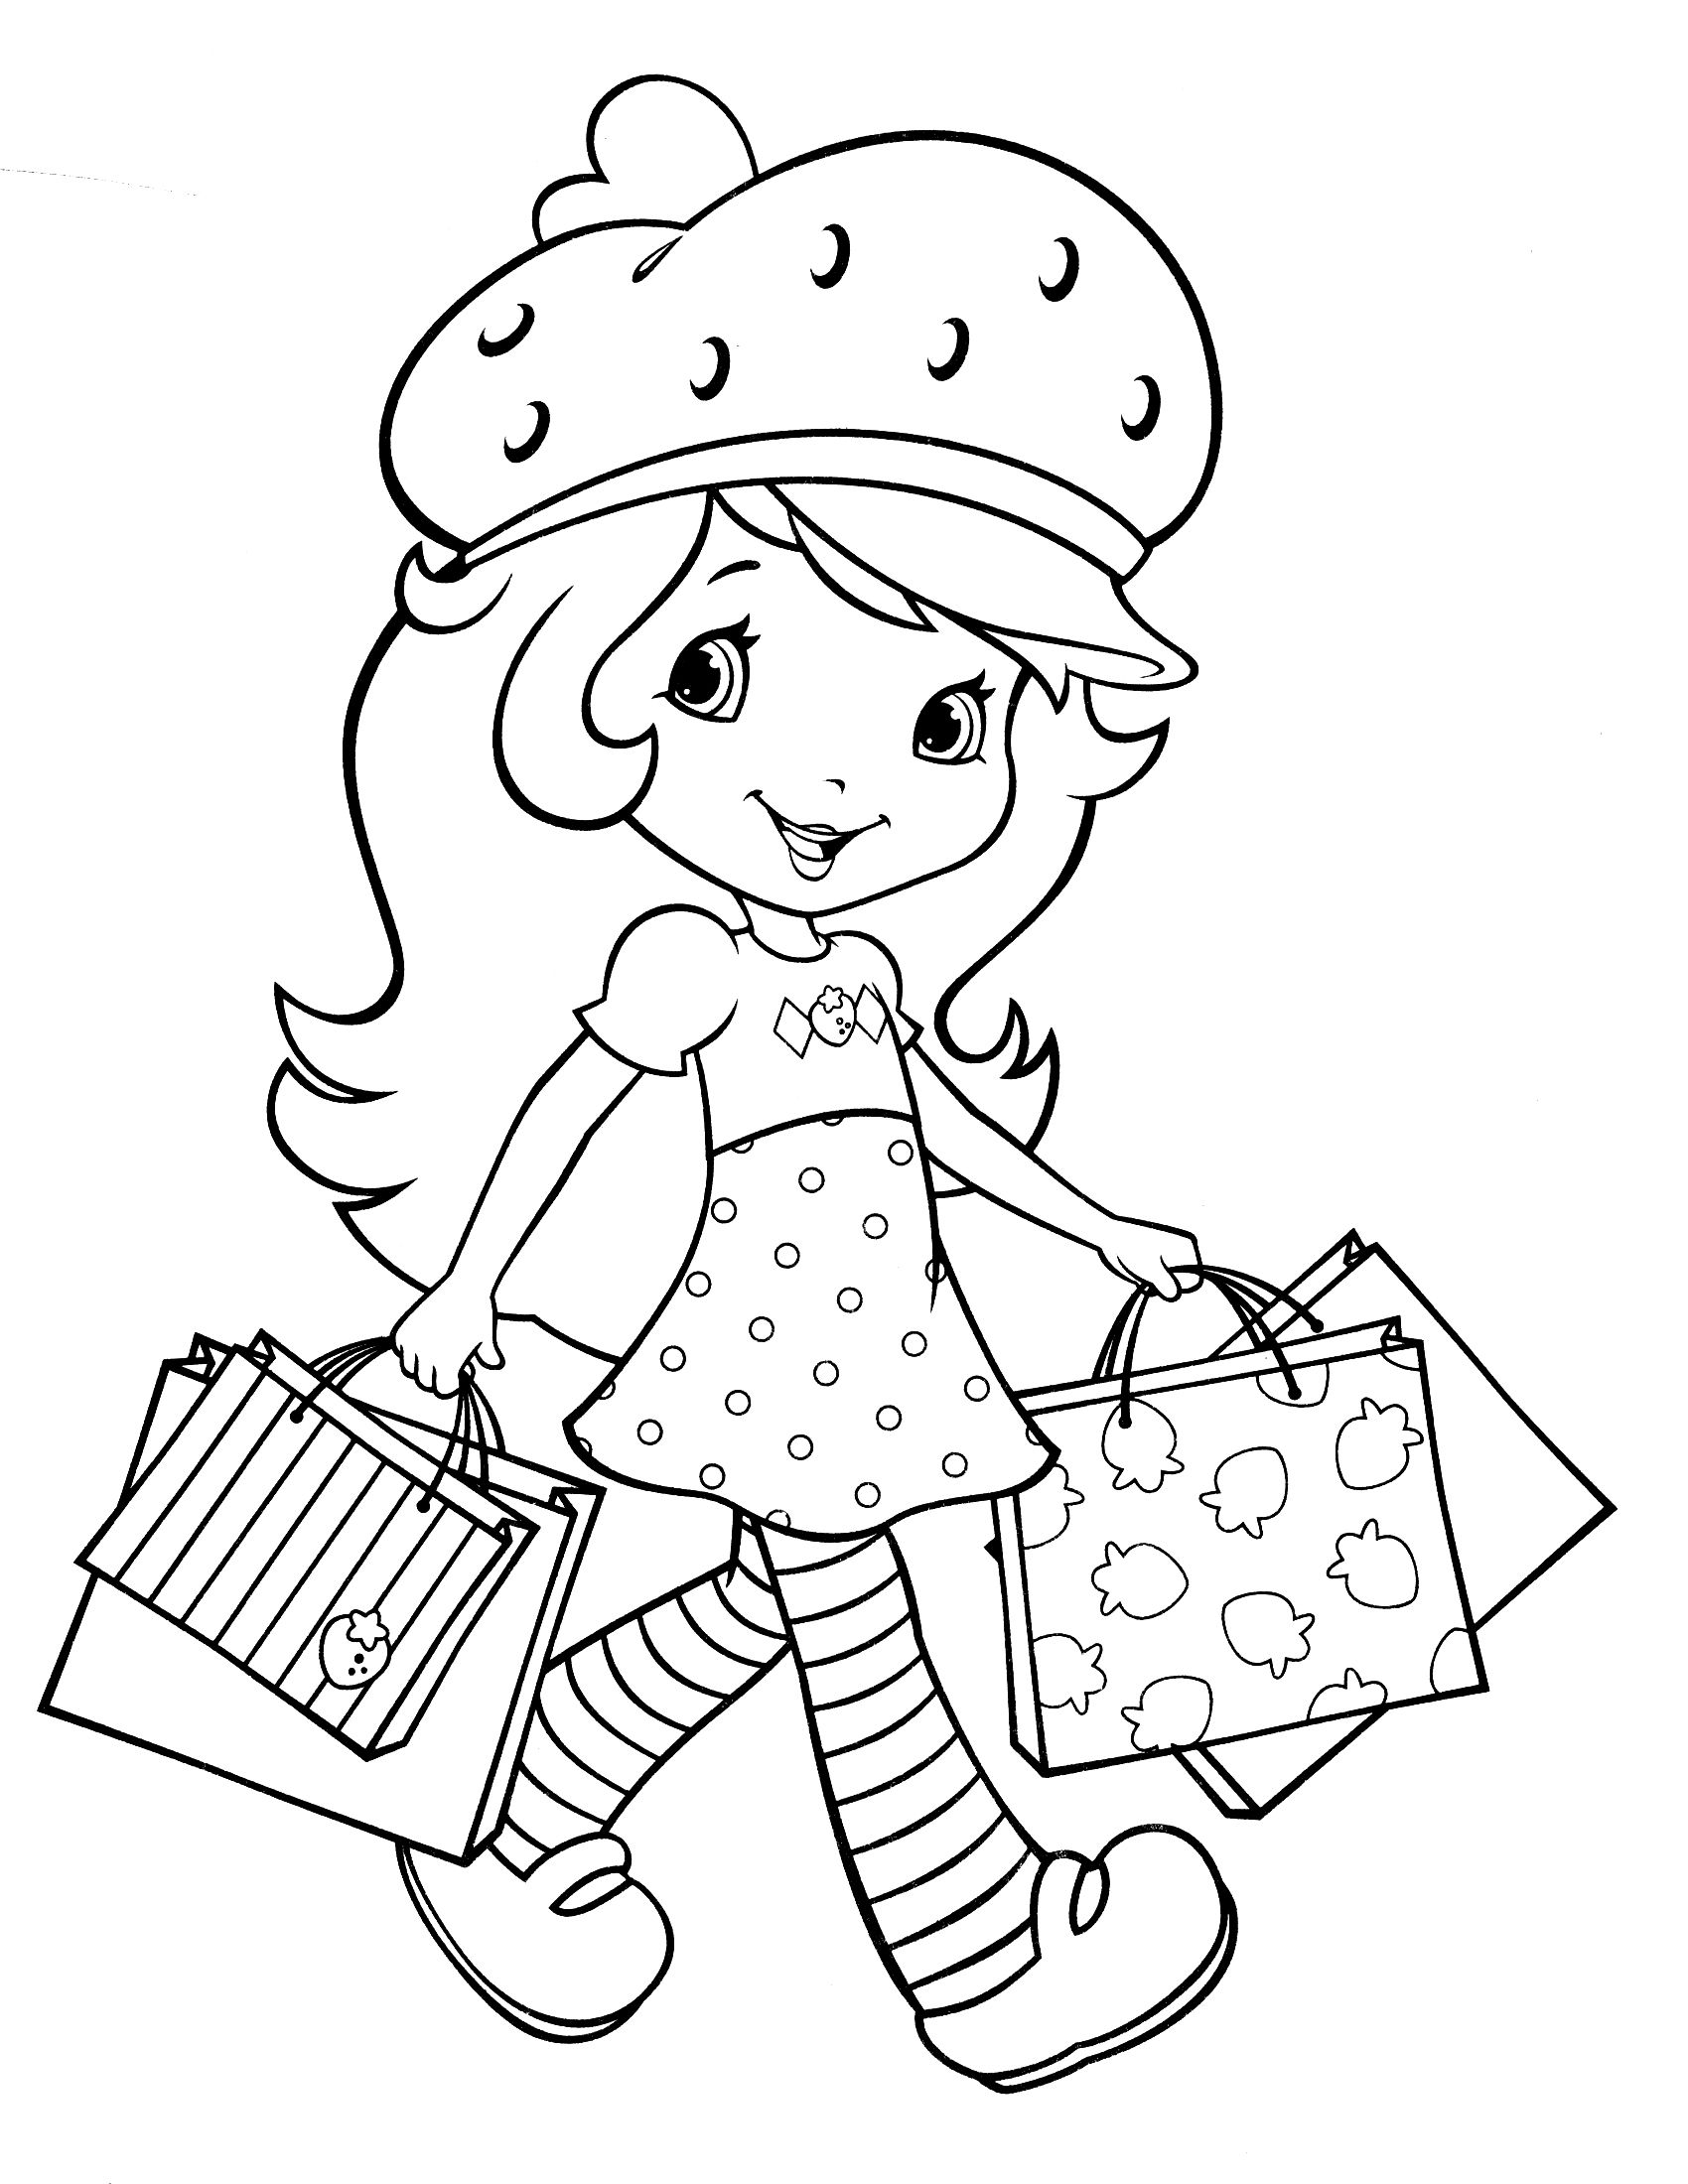 Free Online Strawberry Shortcake Coloring Pages